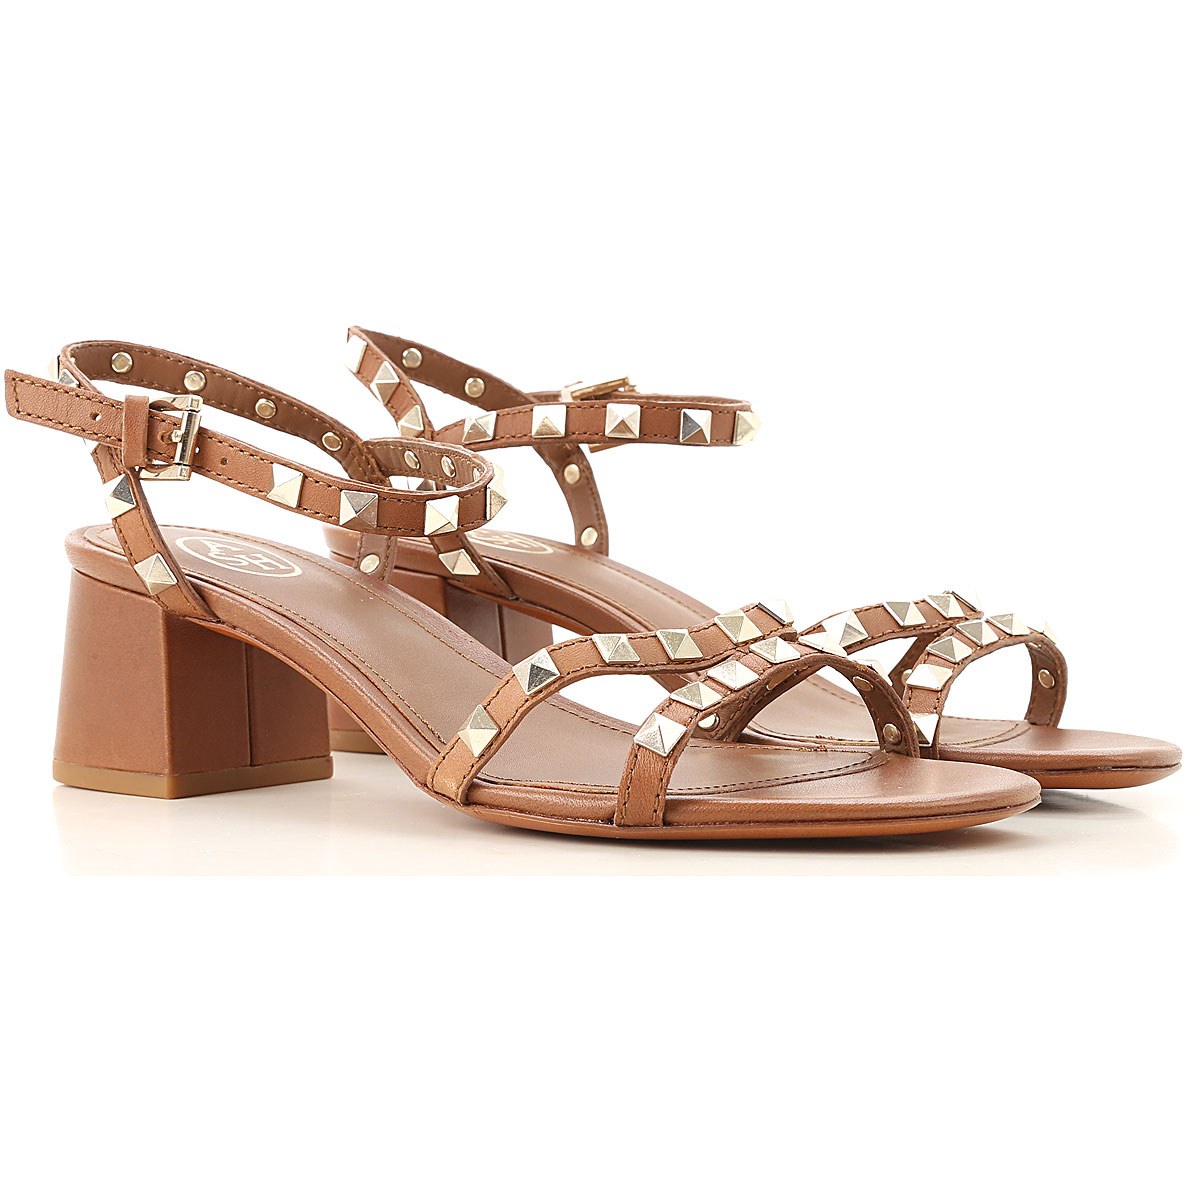 Ash Sandals for Women brown leather USA - GOOFASH